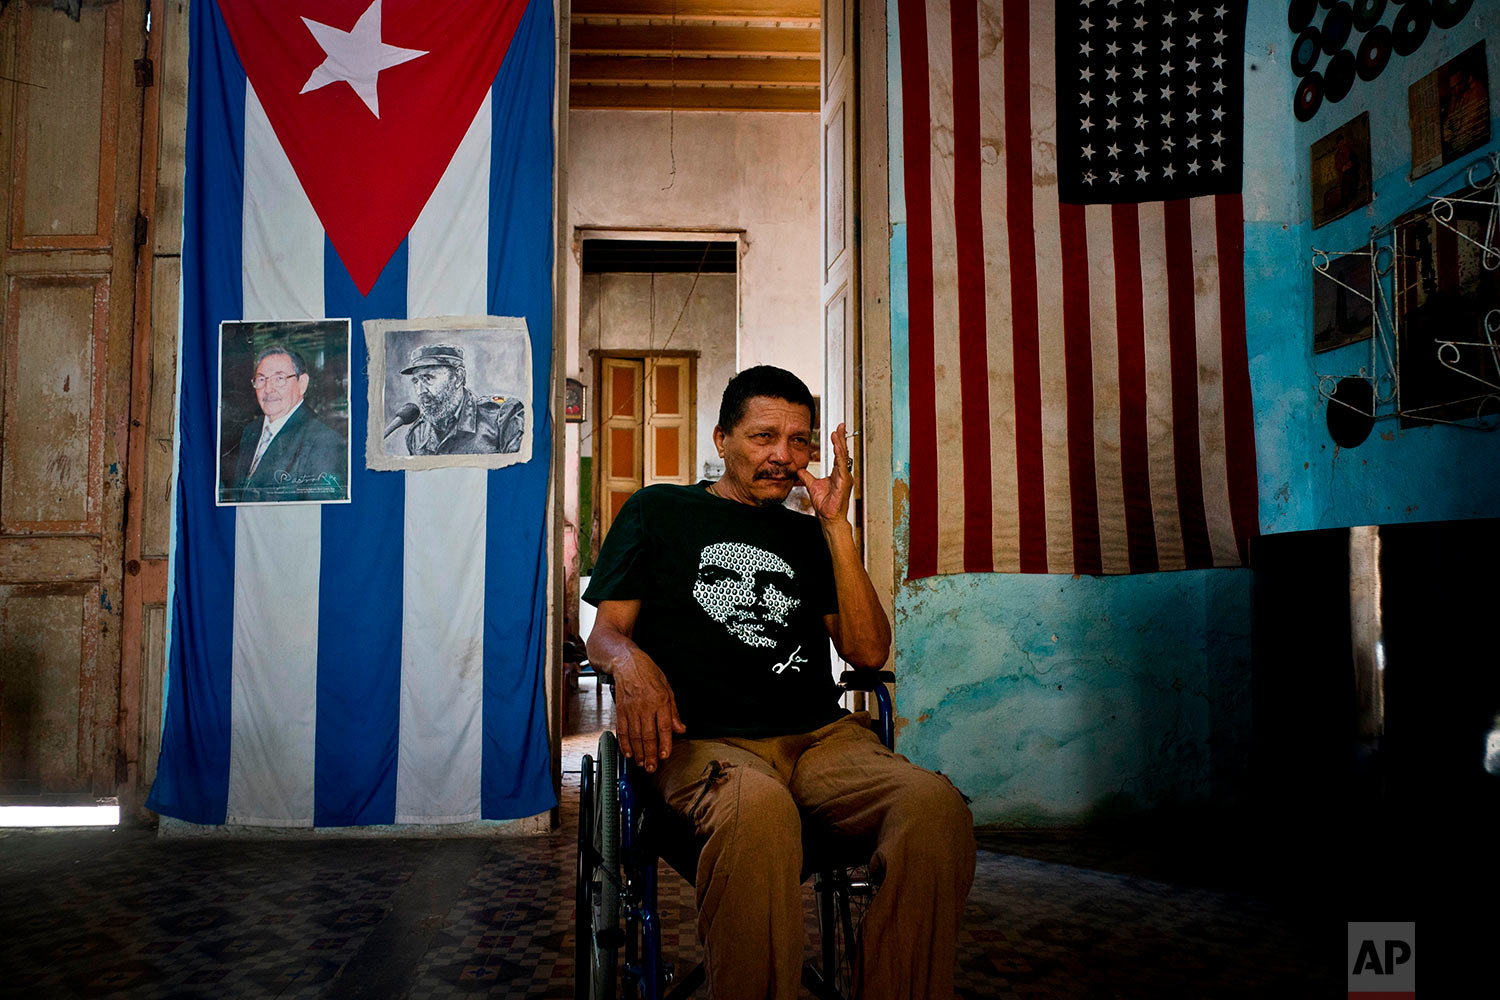 """In this April 12, 2018 photo, Armando Ricart Batista, a teacher by training, a former boxer and actor, poses next to Cuban and U.S. flags at his home, with the Cuban one carrying photos of Fidel and Raul Castro, in Havana, Cuba. Ricart, 65, said he's not affiliated with the Communist Party but hopes a new generation of leaders will follow the ideals of the Castros. He said he hangs the U.S. flag because relations with the U.S. improved under then-President Barack Obama, and the majority of American people are in favor of relations with Cuba. """"The American people are good,"""" he said. (AP Photo/Ramon Espinosa)"""